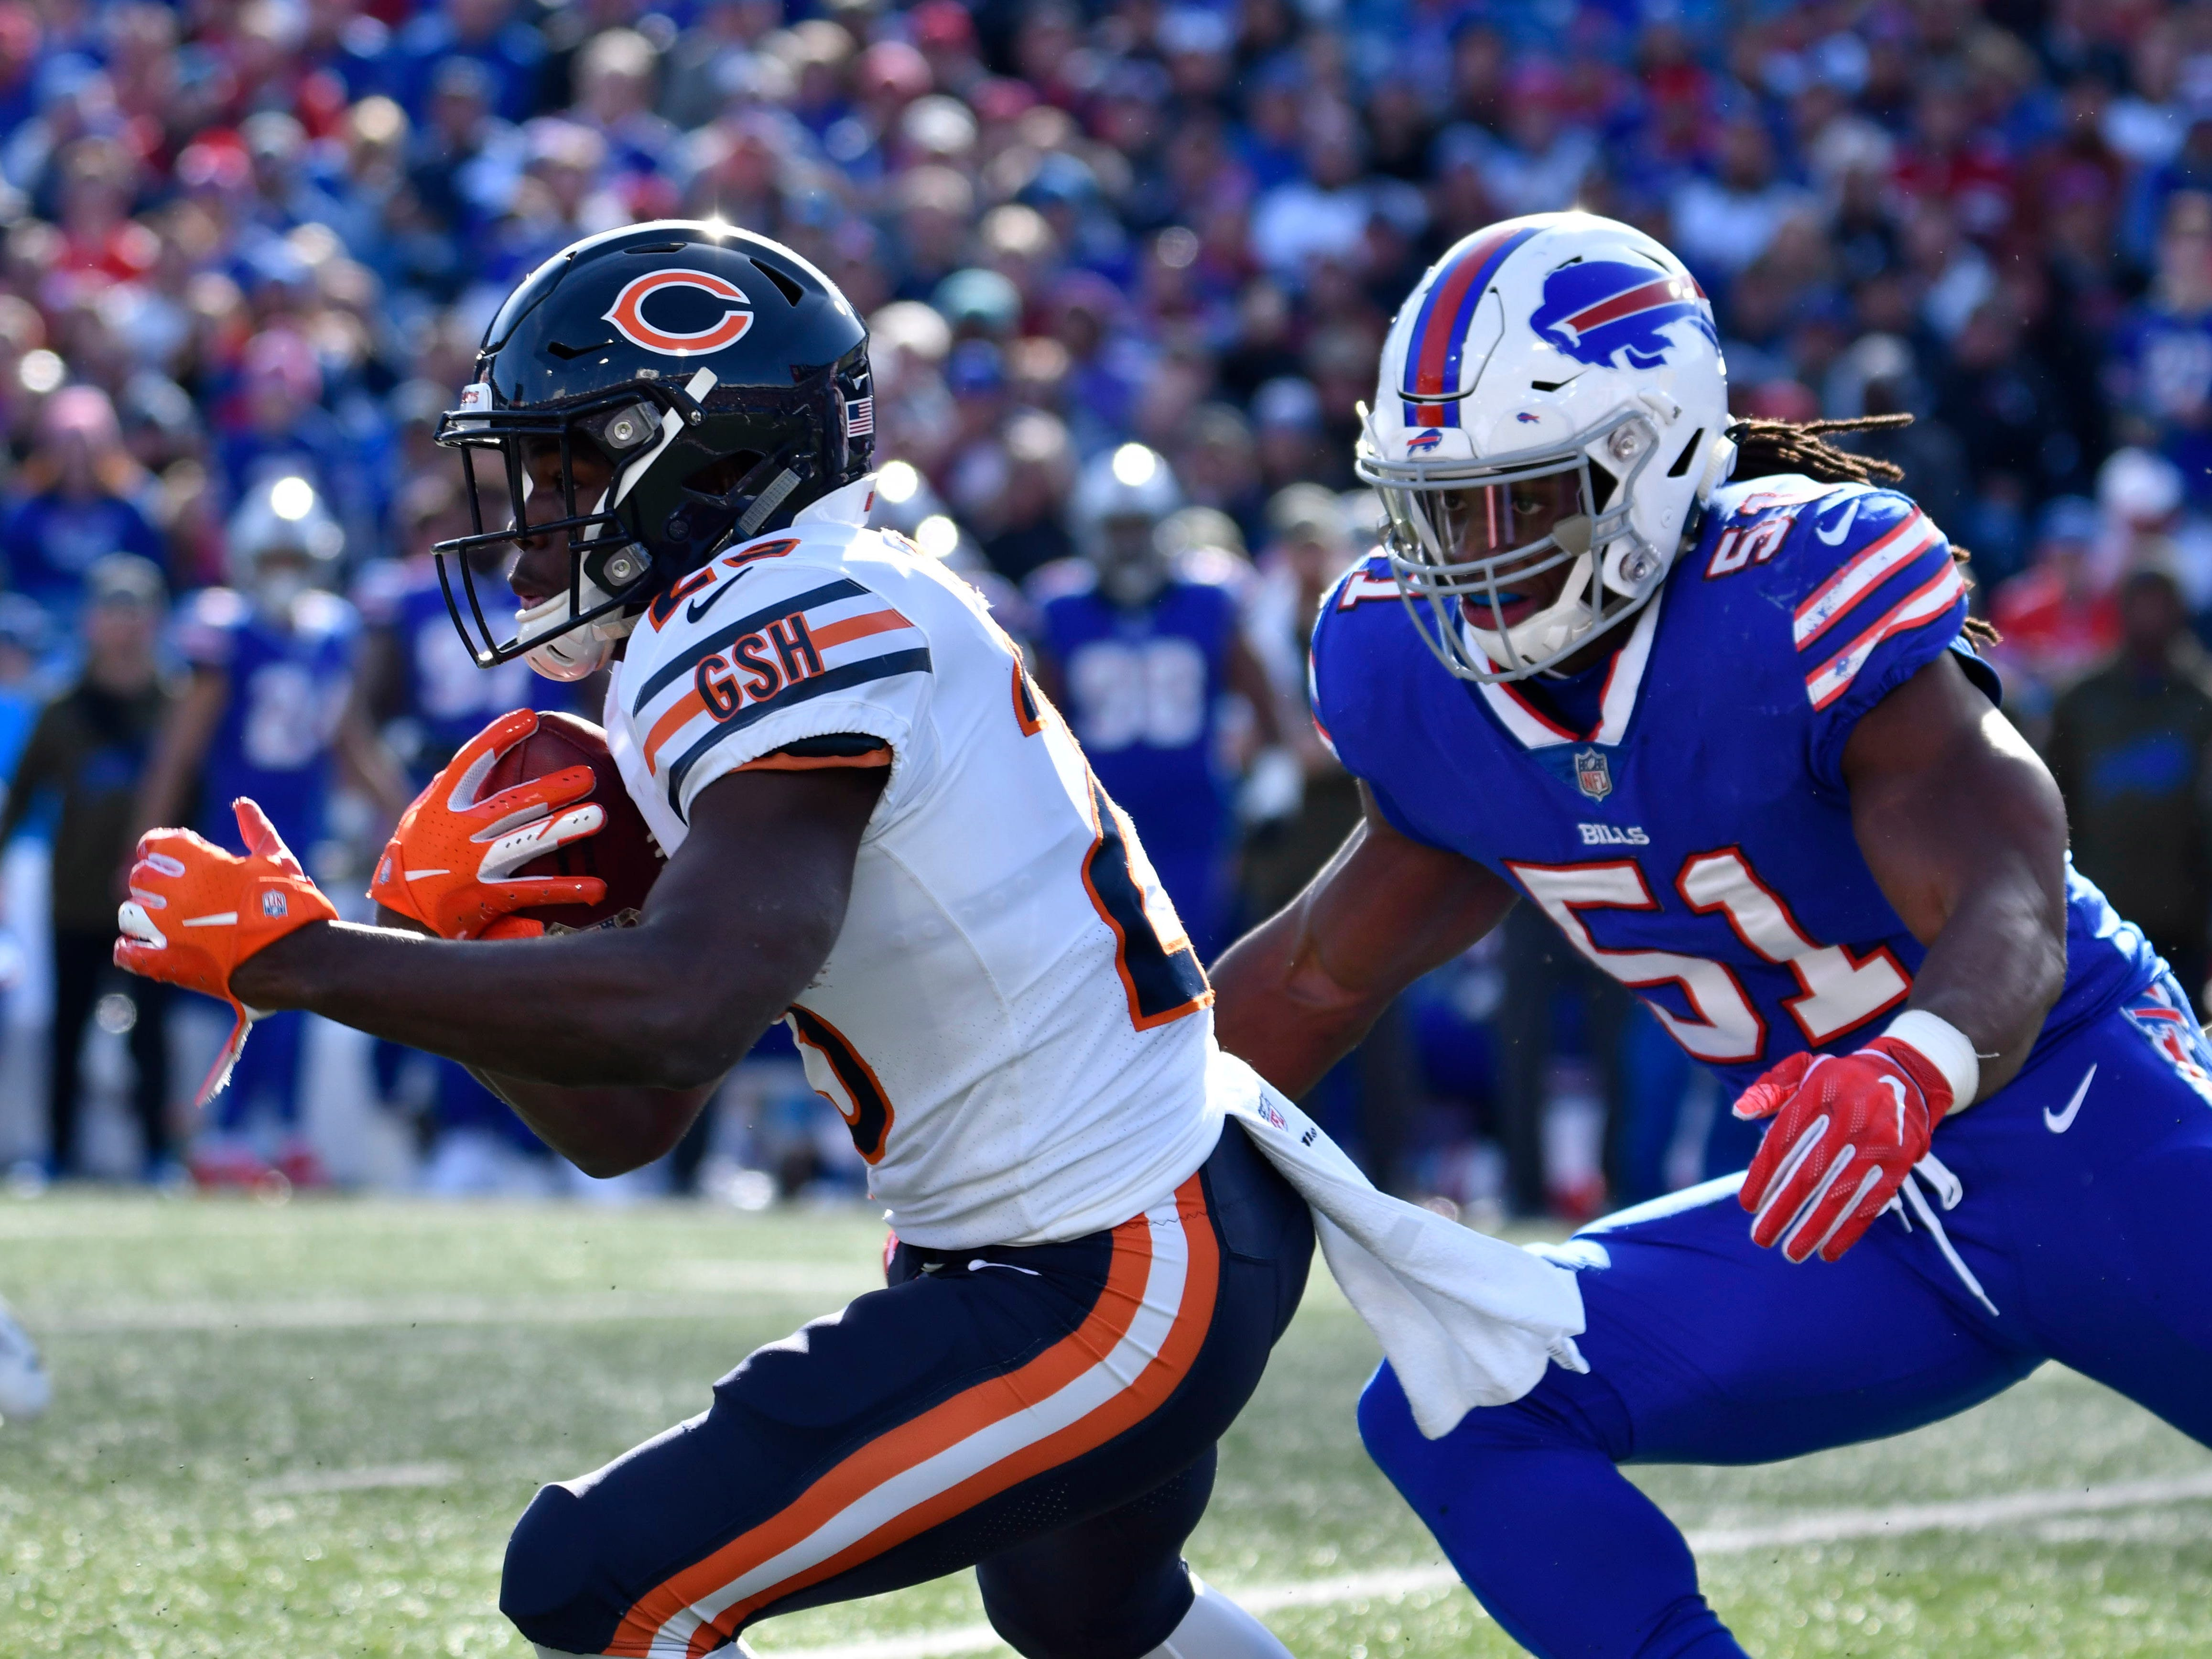 Buffalo Bills linebacker Julian Stanford (51) chases Chicago Bears running back Tarik Cohen (29) during the first quarter at New Era Field.